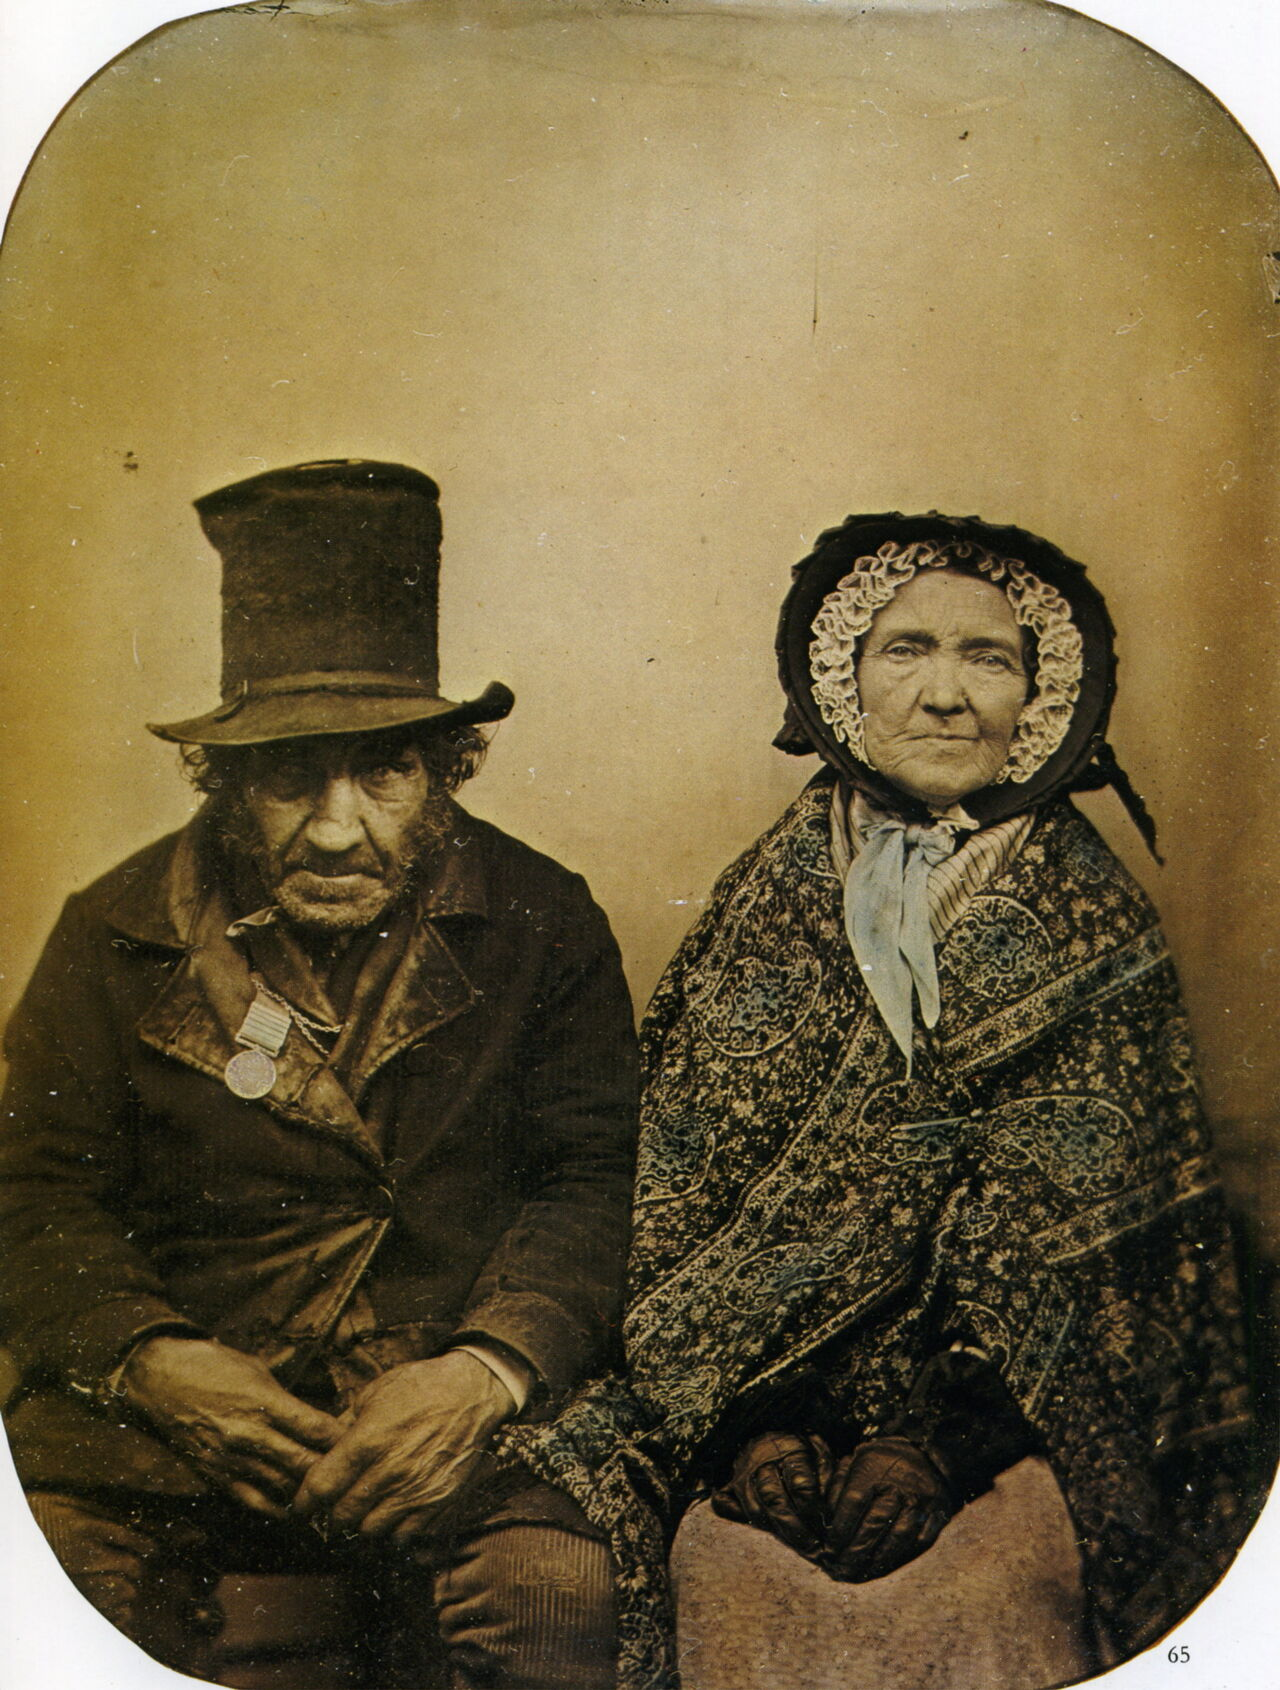 A male and female sitting next to each other, the woman is wrapped in a Paisley shawl.